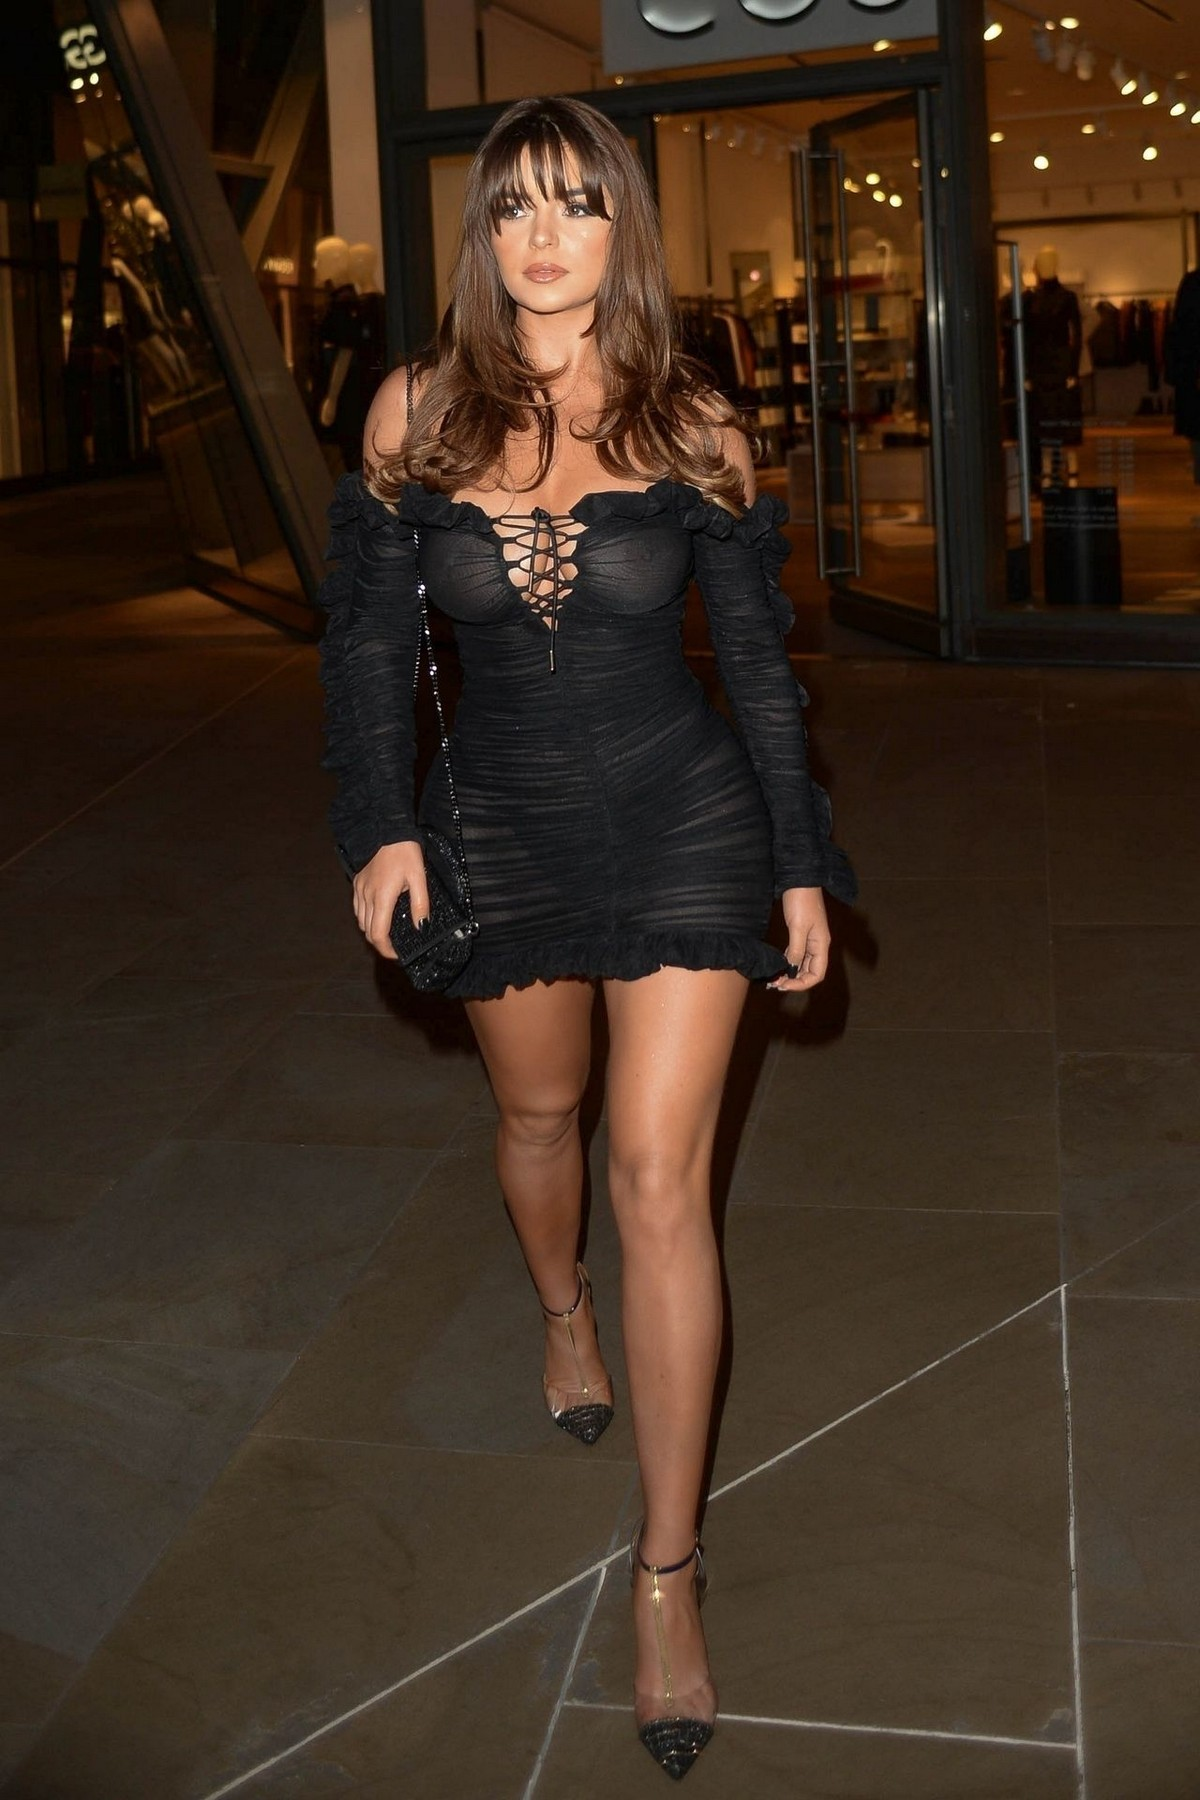 Demi Rose Mawby seen in Stylish Short Dress at The Skinny Tan Choc Range launch party in Madison, London 2019/11/19 24